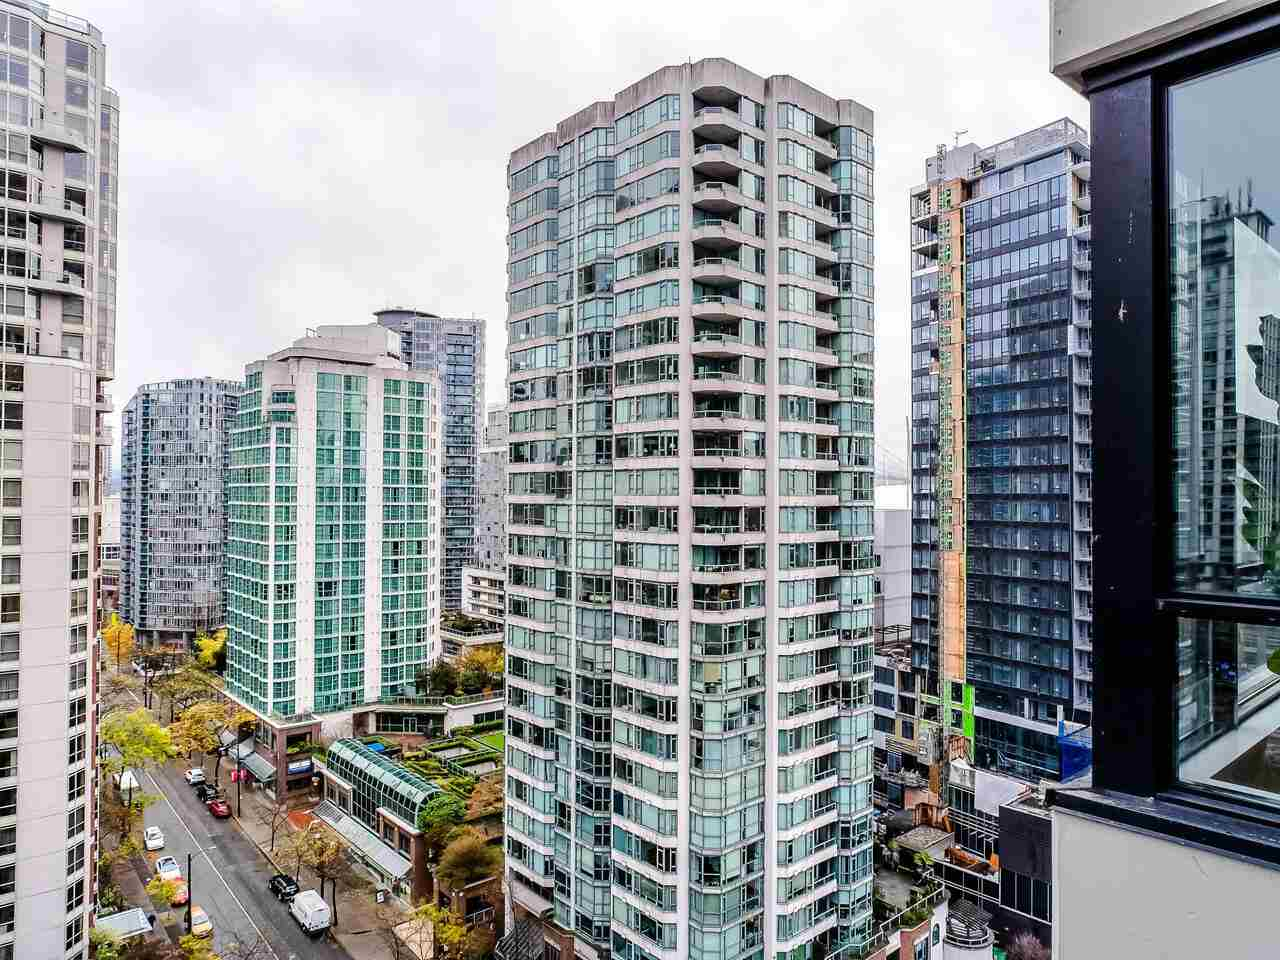 1810 909 MAINLAND STREET - Yaletown Apartment/Condo for sale, 1 Bedroom (R2518845) - #24